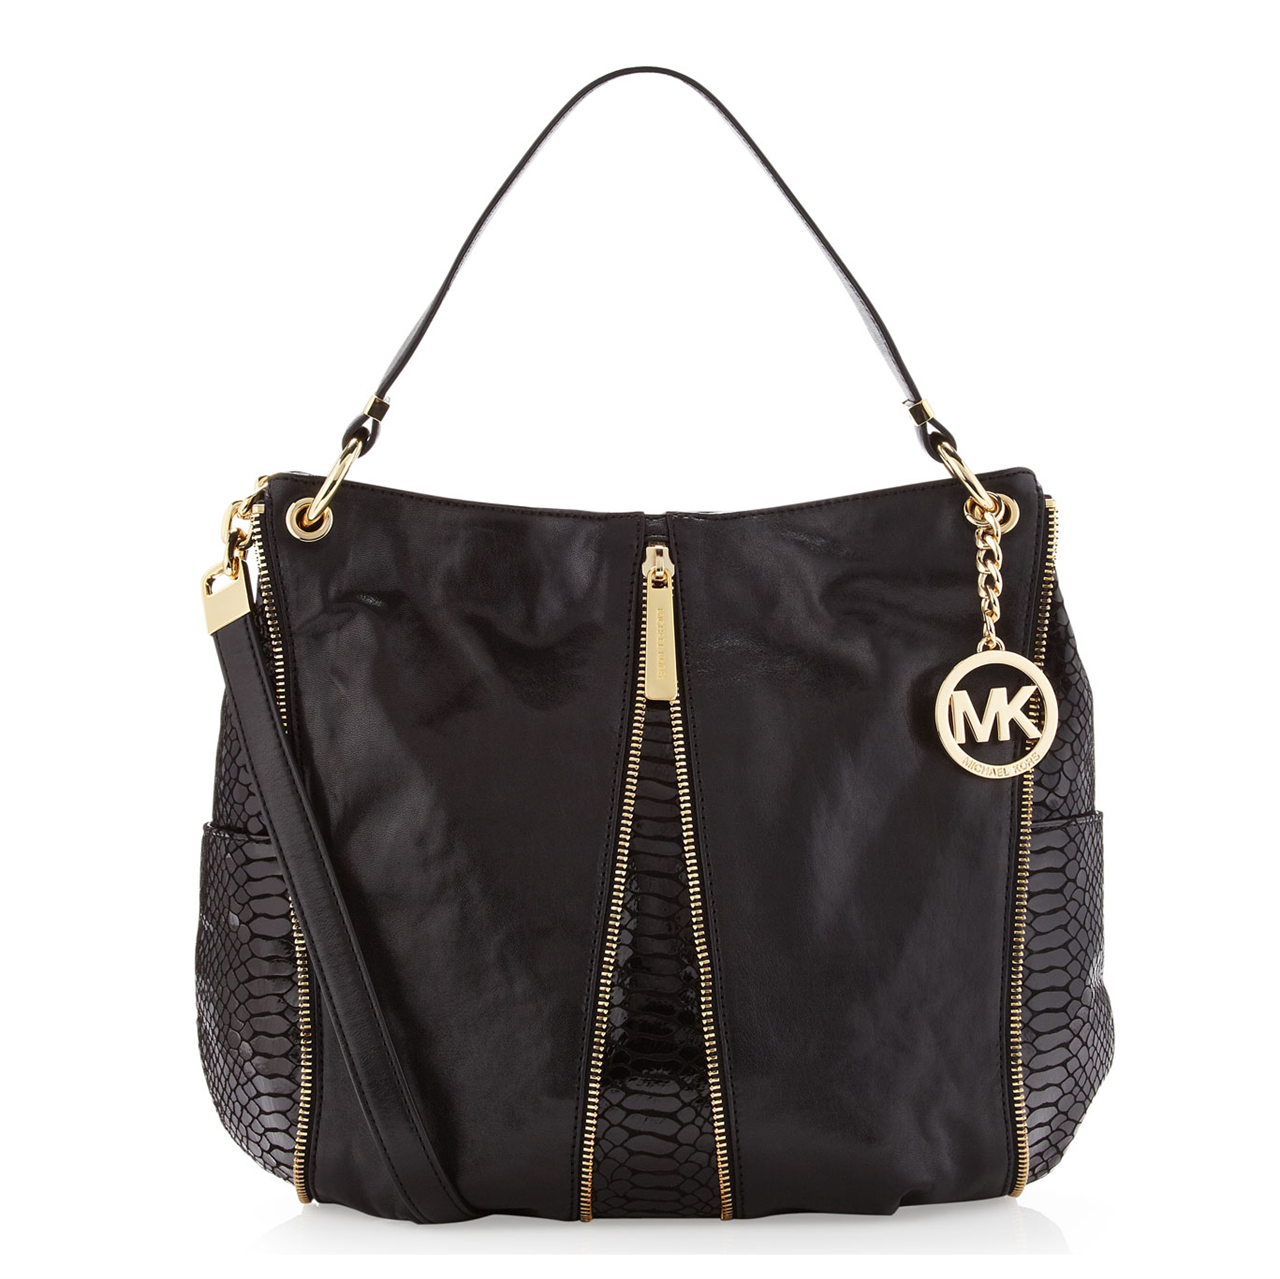 michael kors bags aol image search results. Black Bedroom Furniture Sets. Home Design Ideas